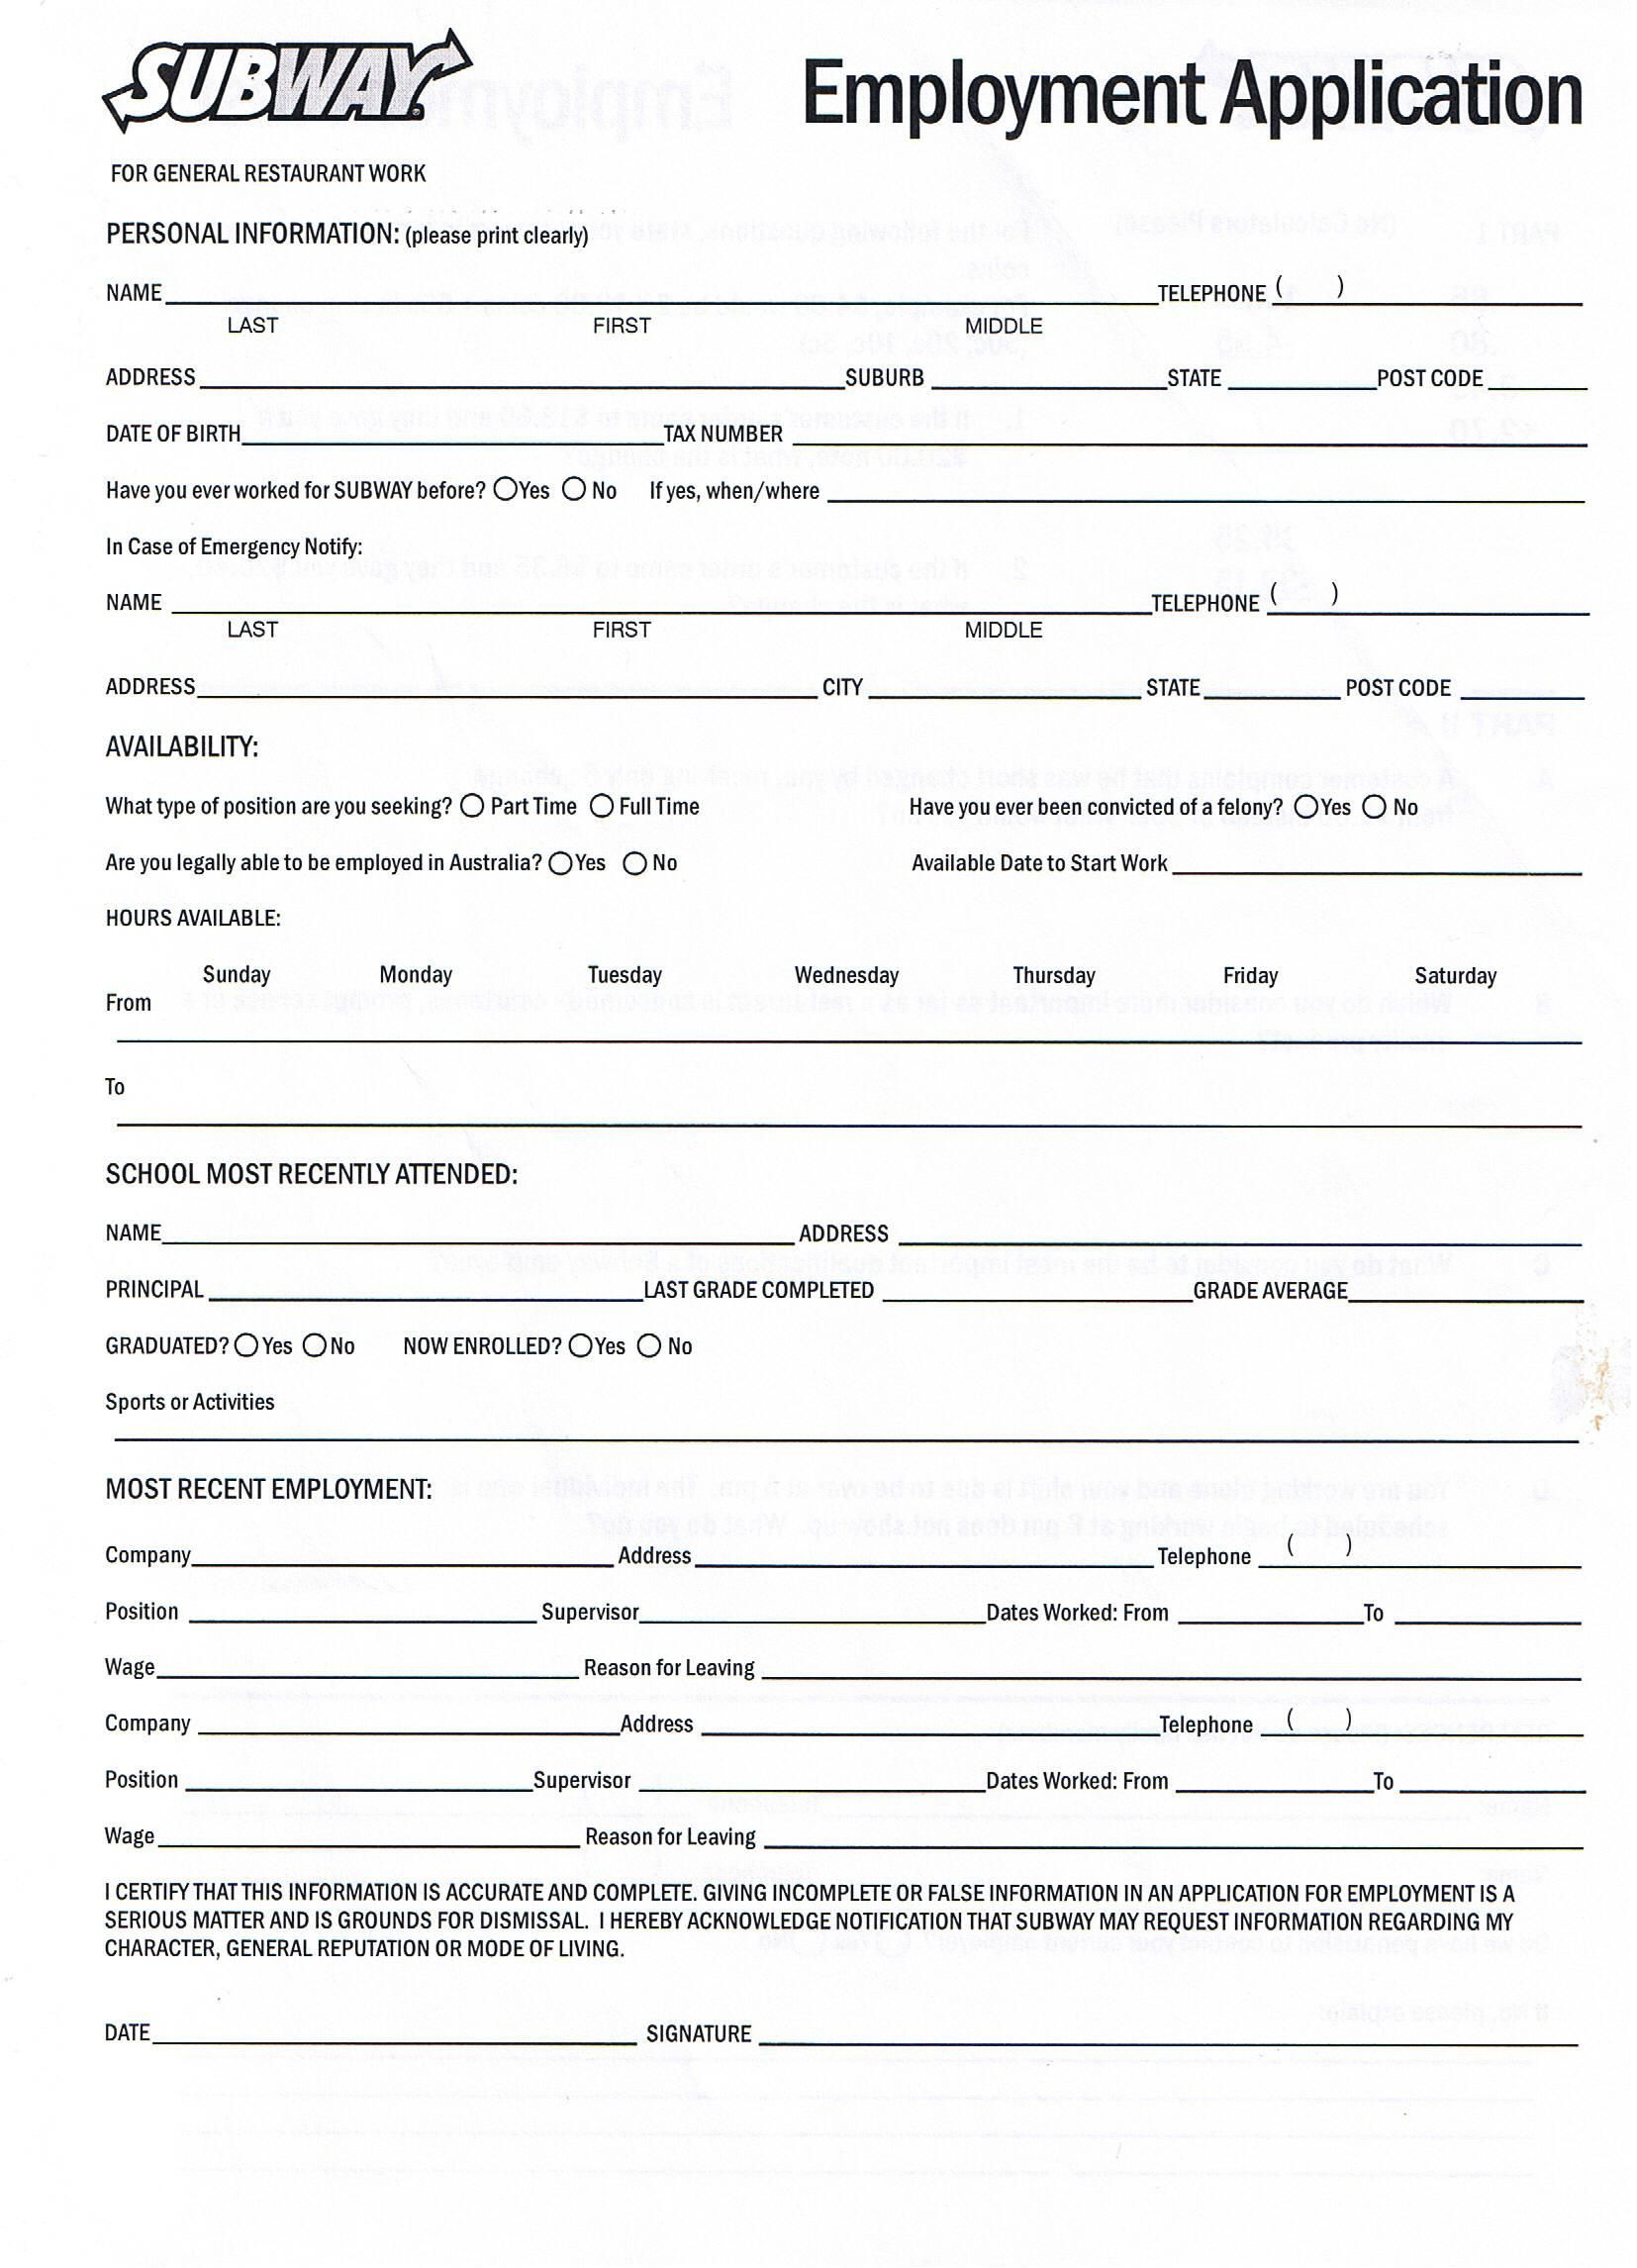 Printable job application forms online forms download and print printable job application forms online forms download and print generic blank and sample altavistaventures Gallery